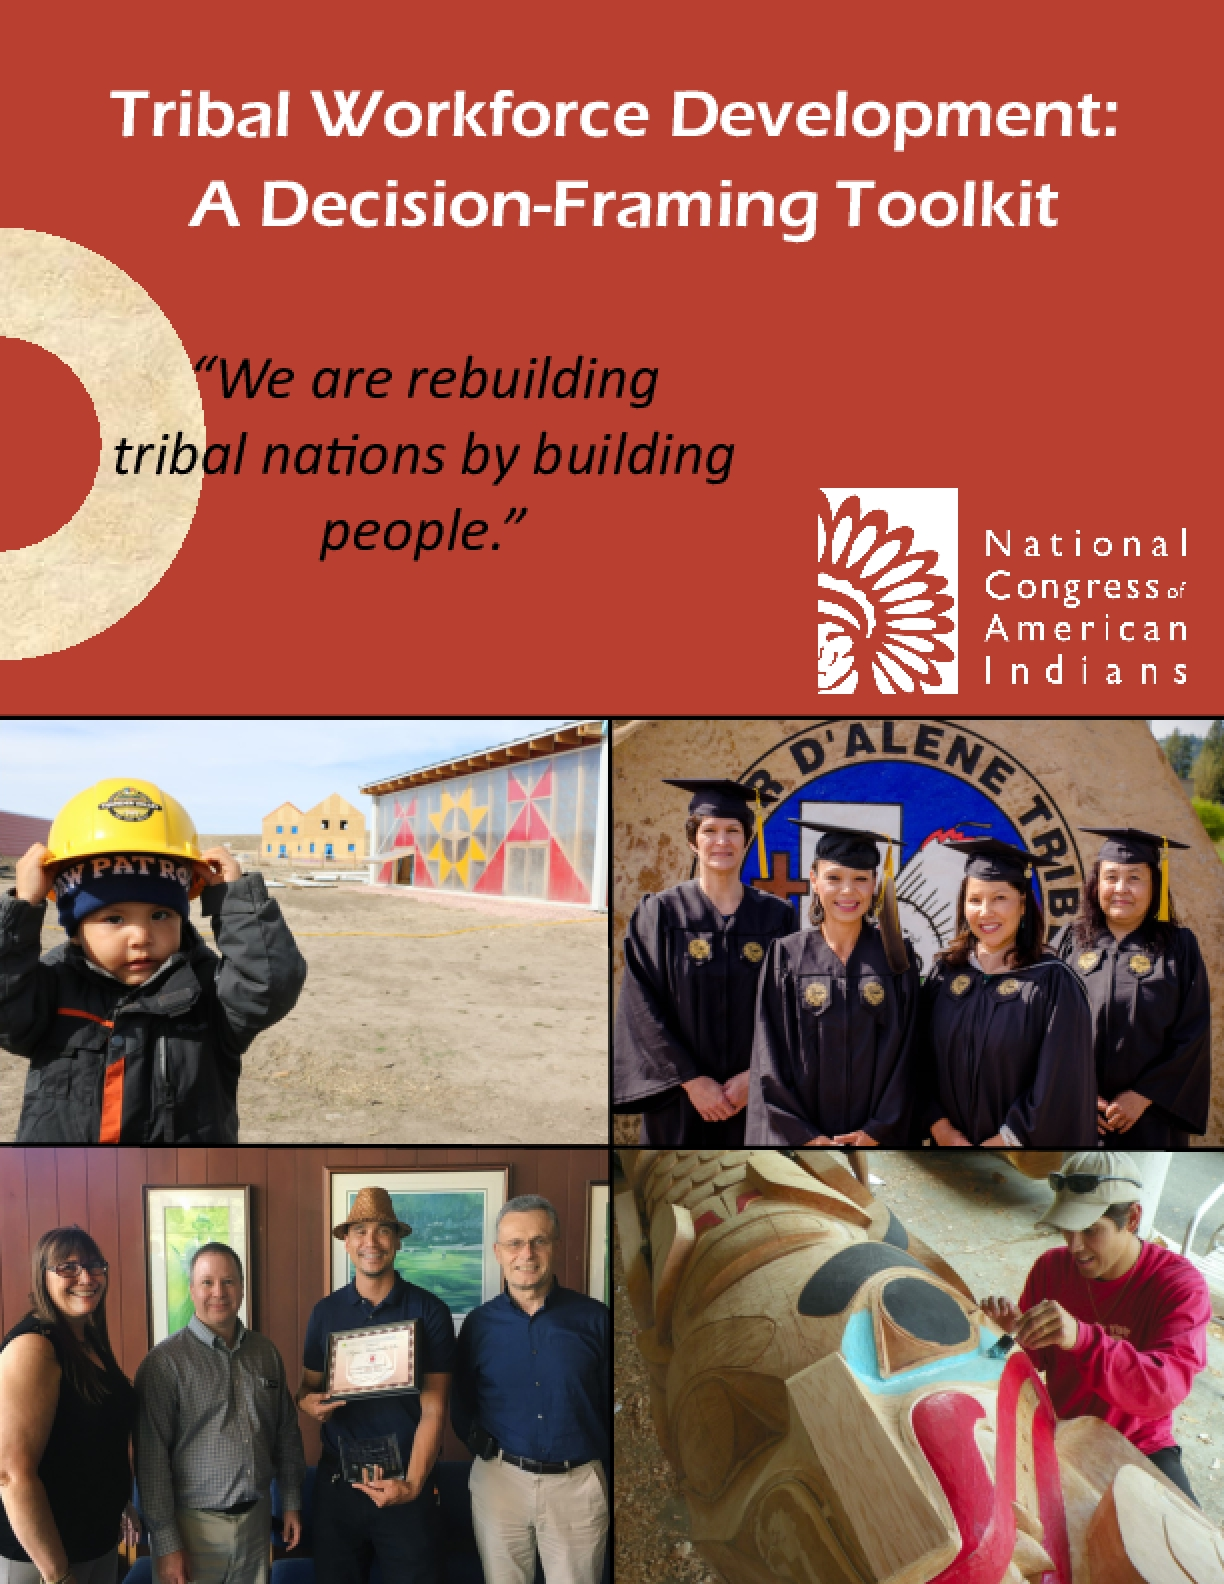 Tribal Workforce Development: A Decision-Framing Toolkit